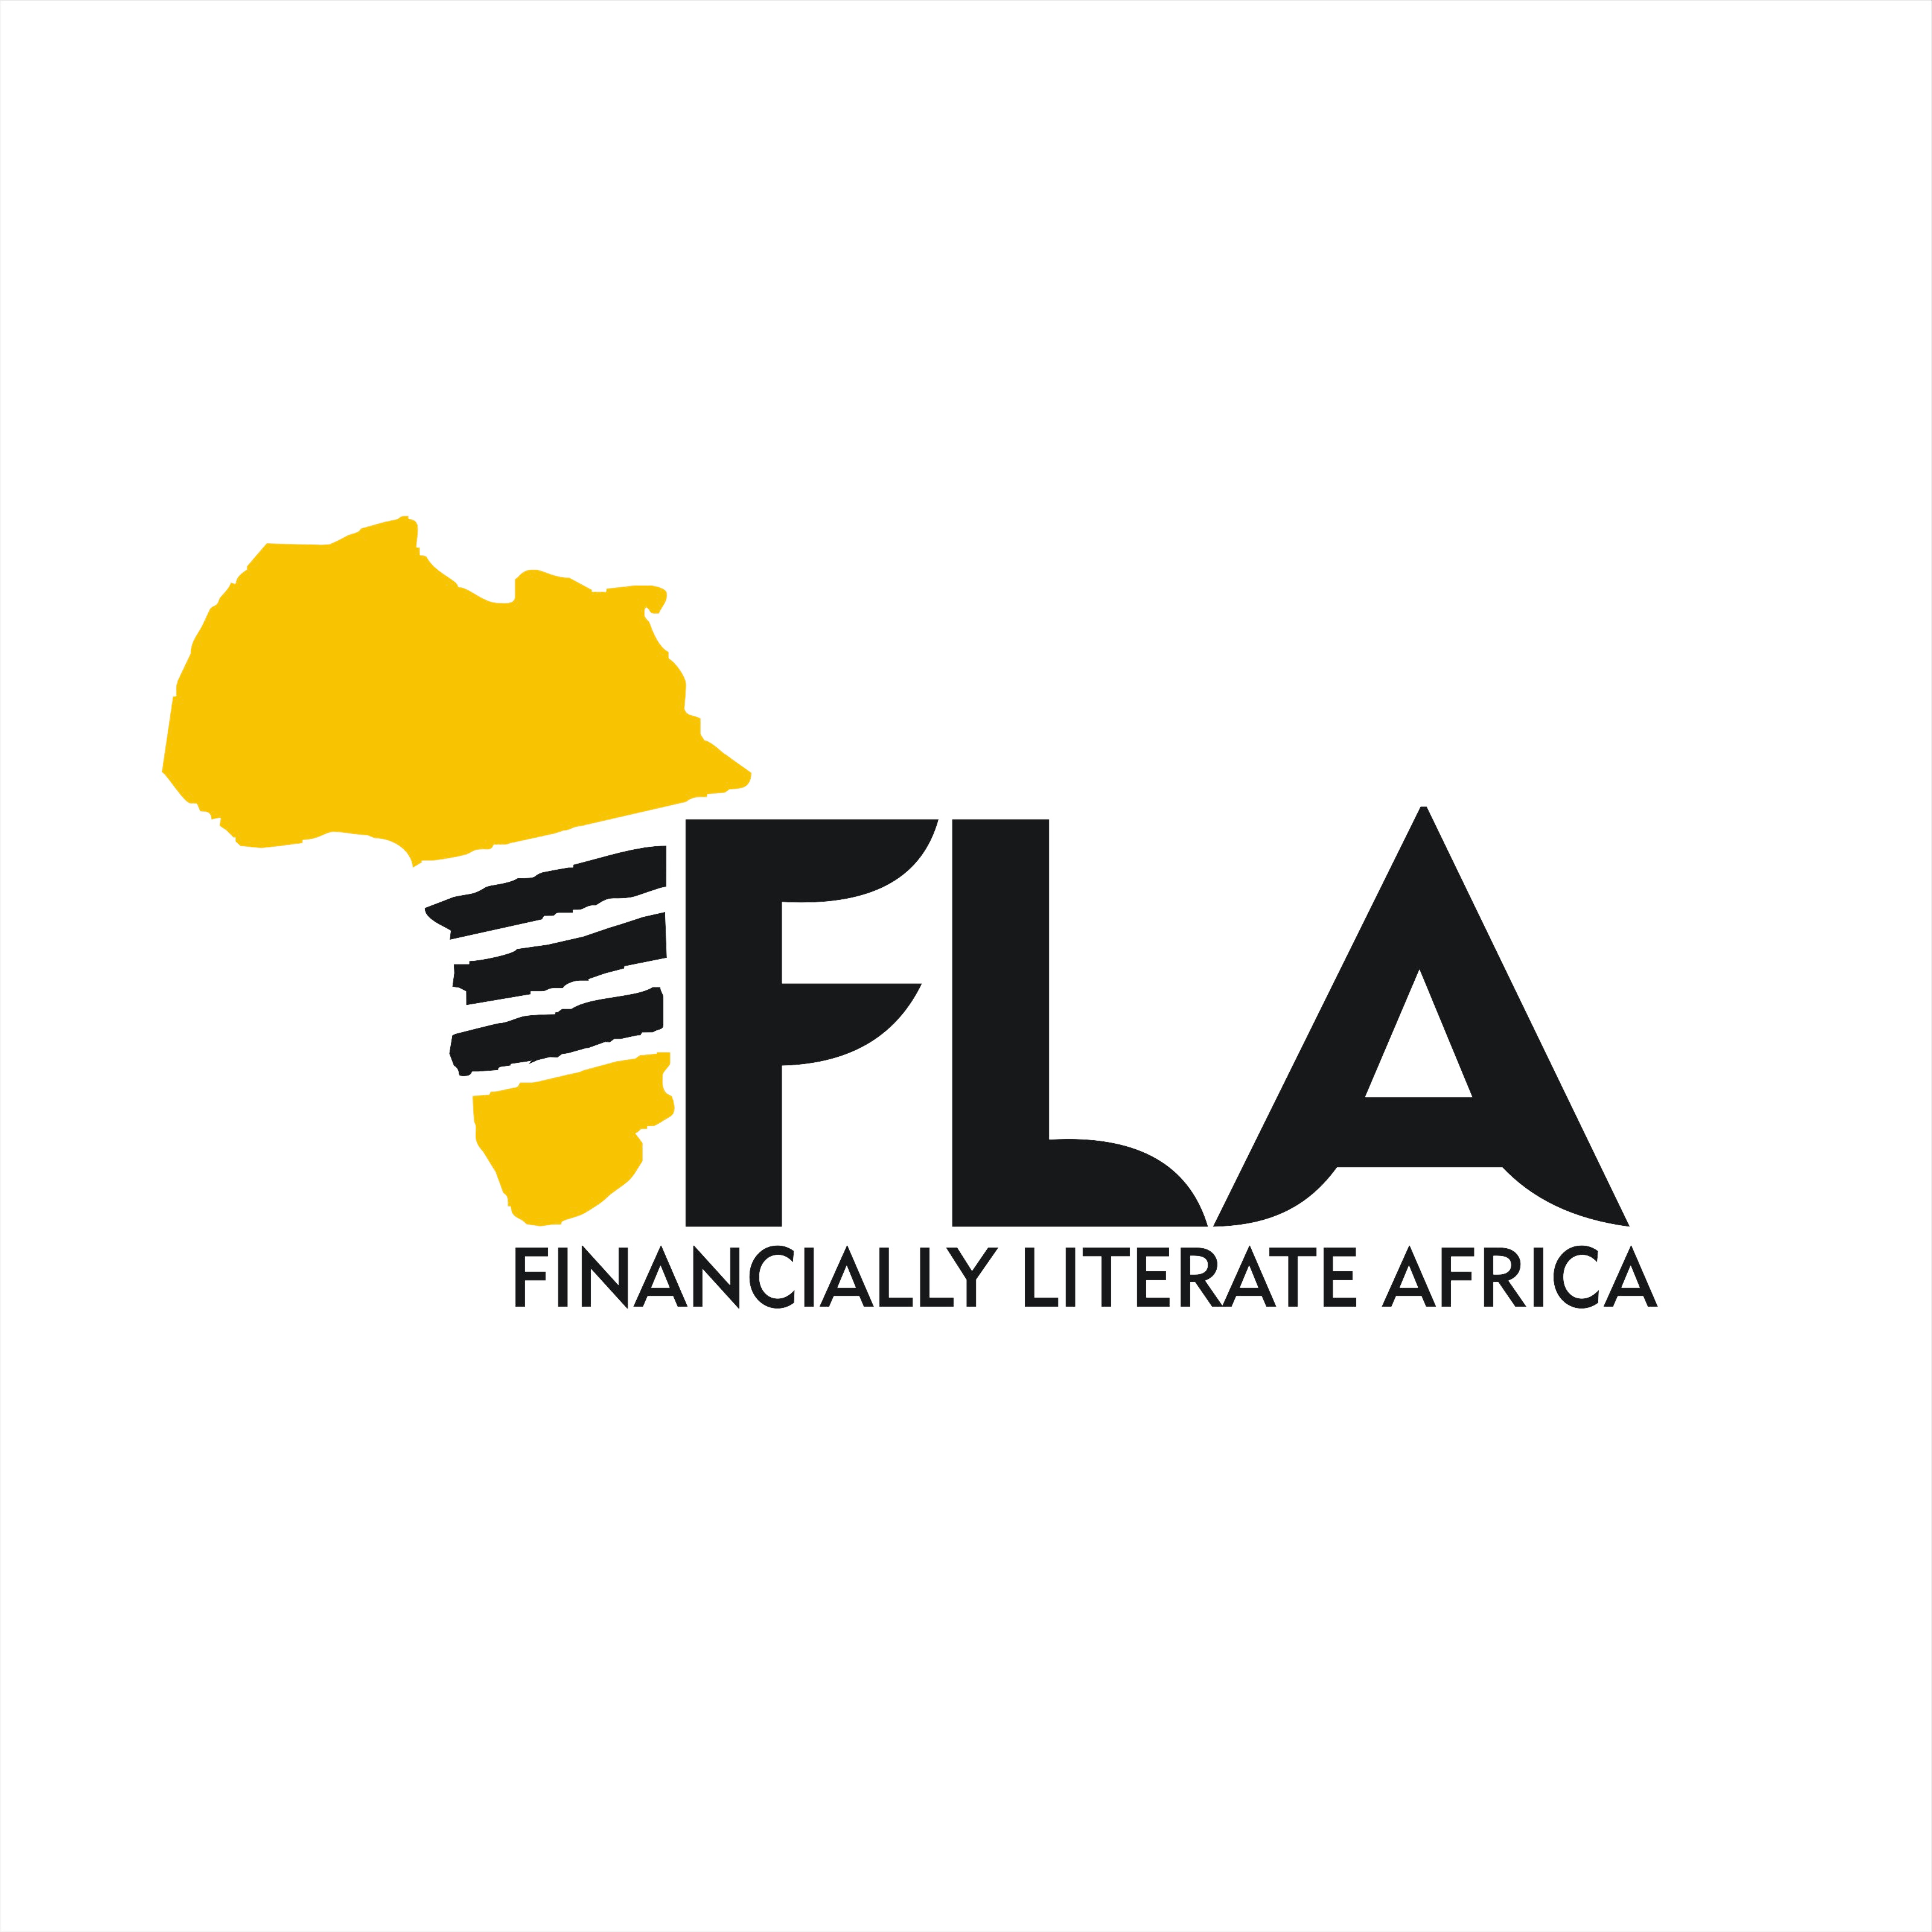 Financially Literate Africa